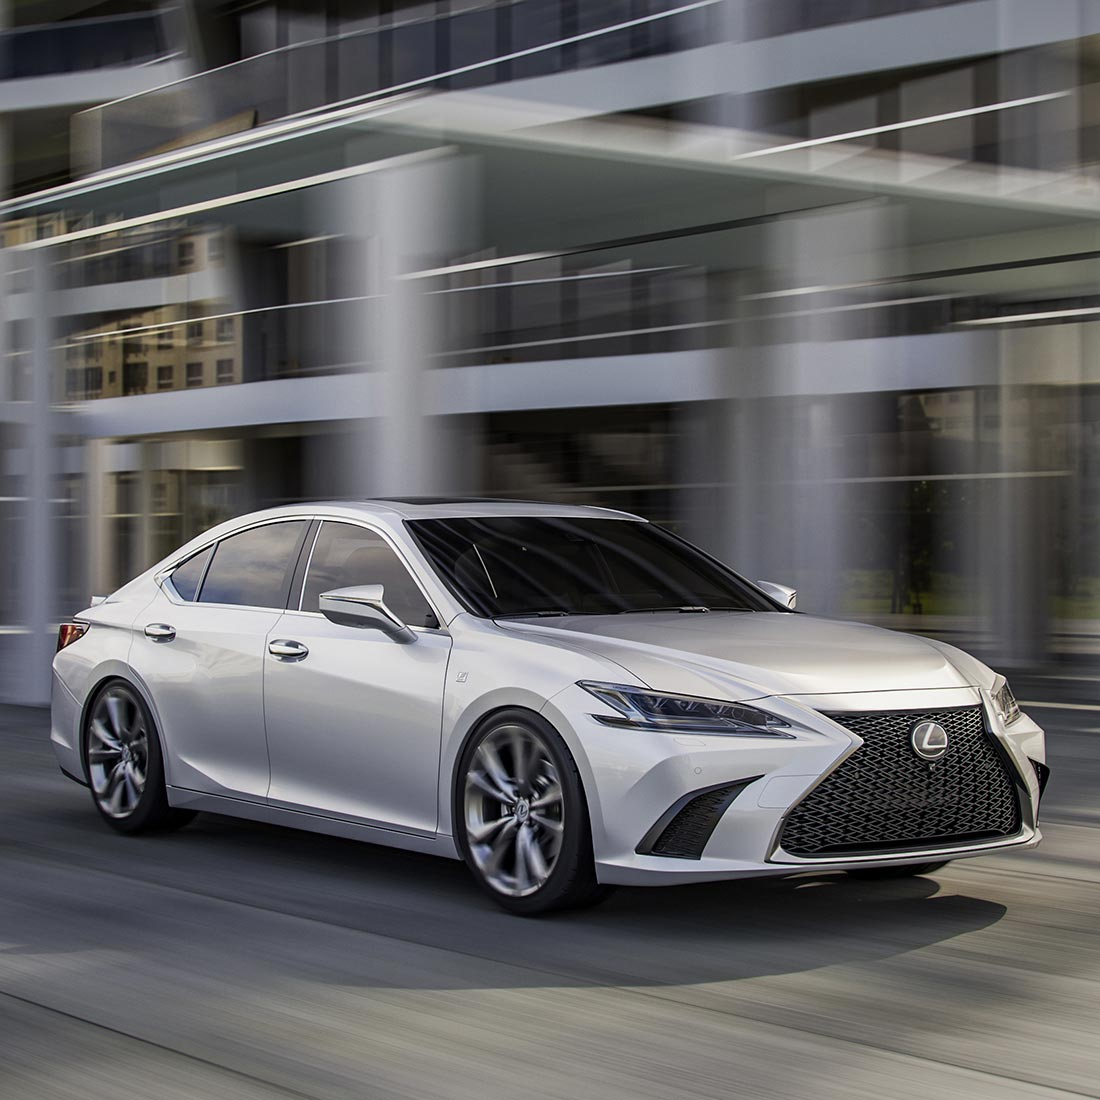 Lexus-White-Motion-Blur-blog-post-feat-n-tutorial-car-rendering